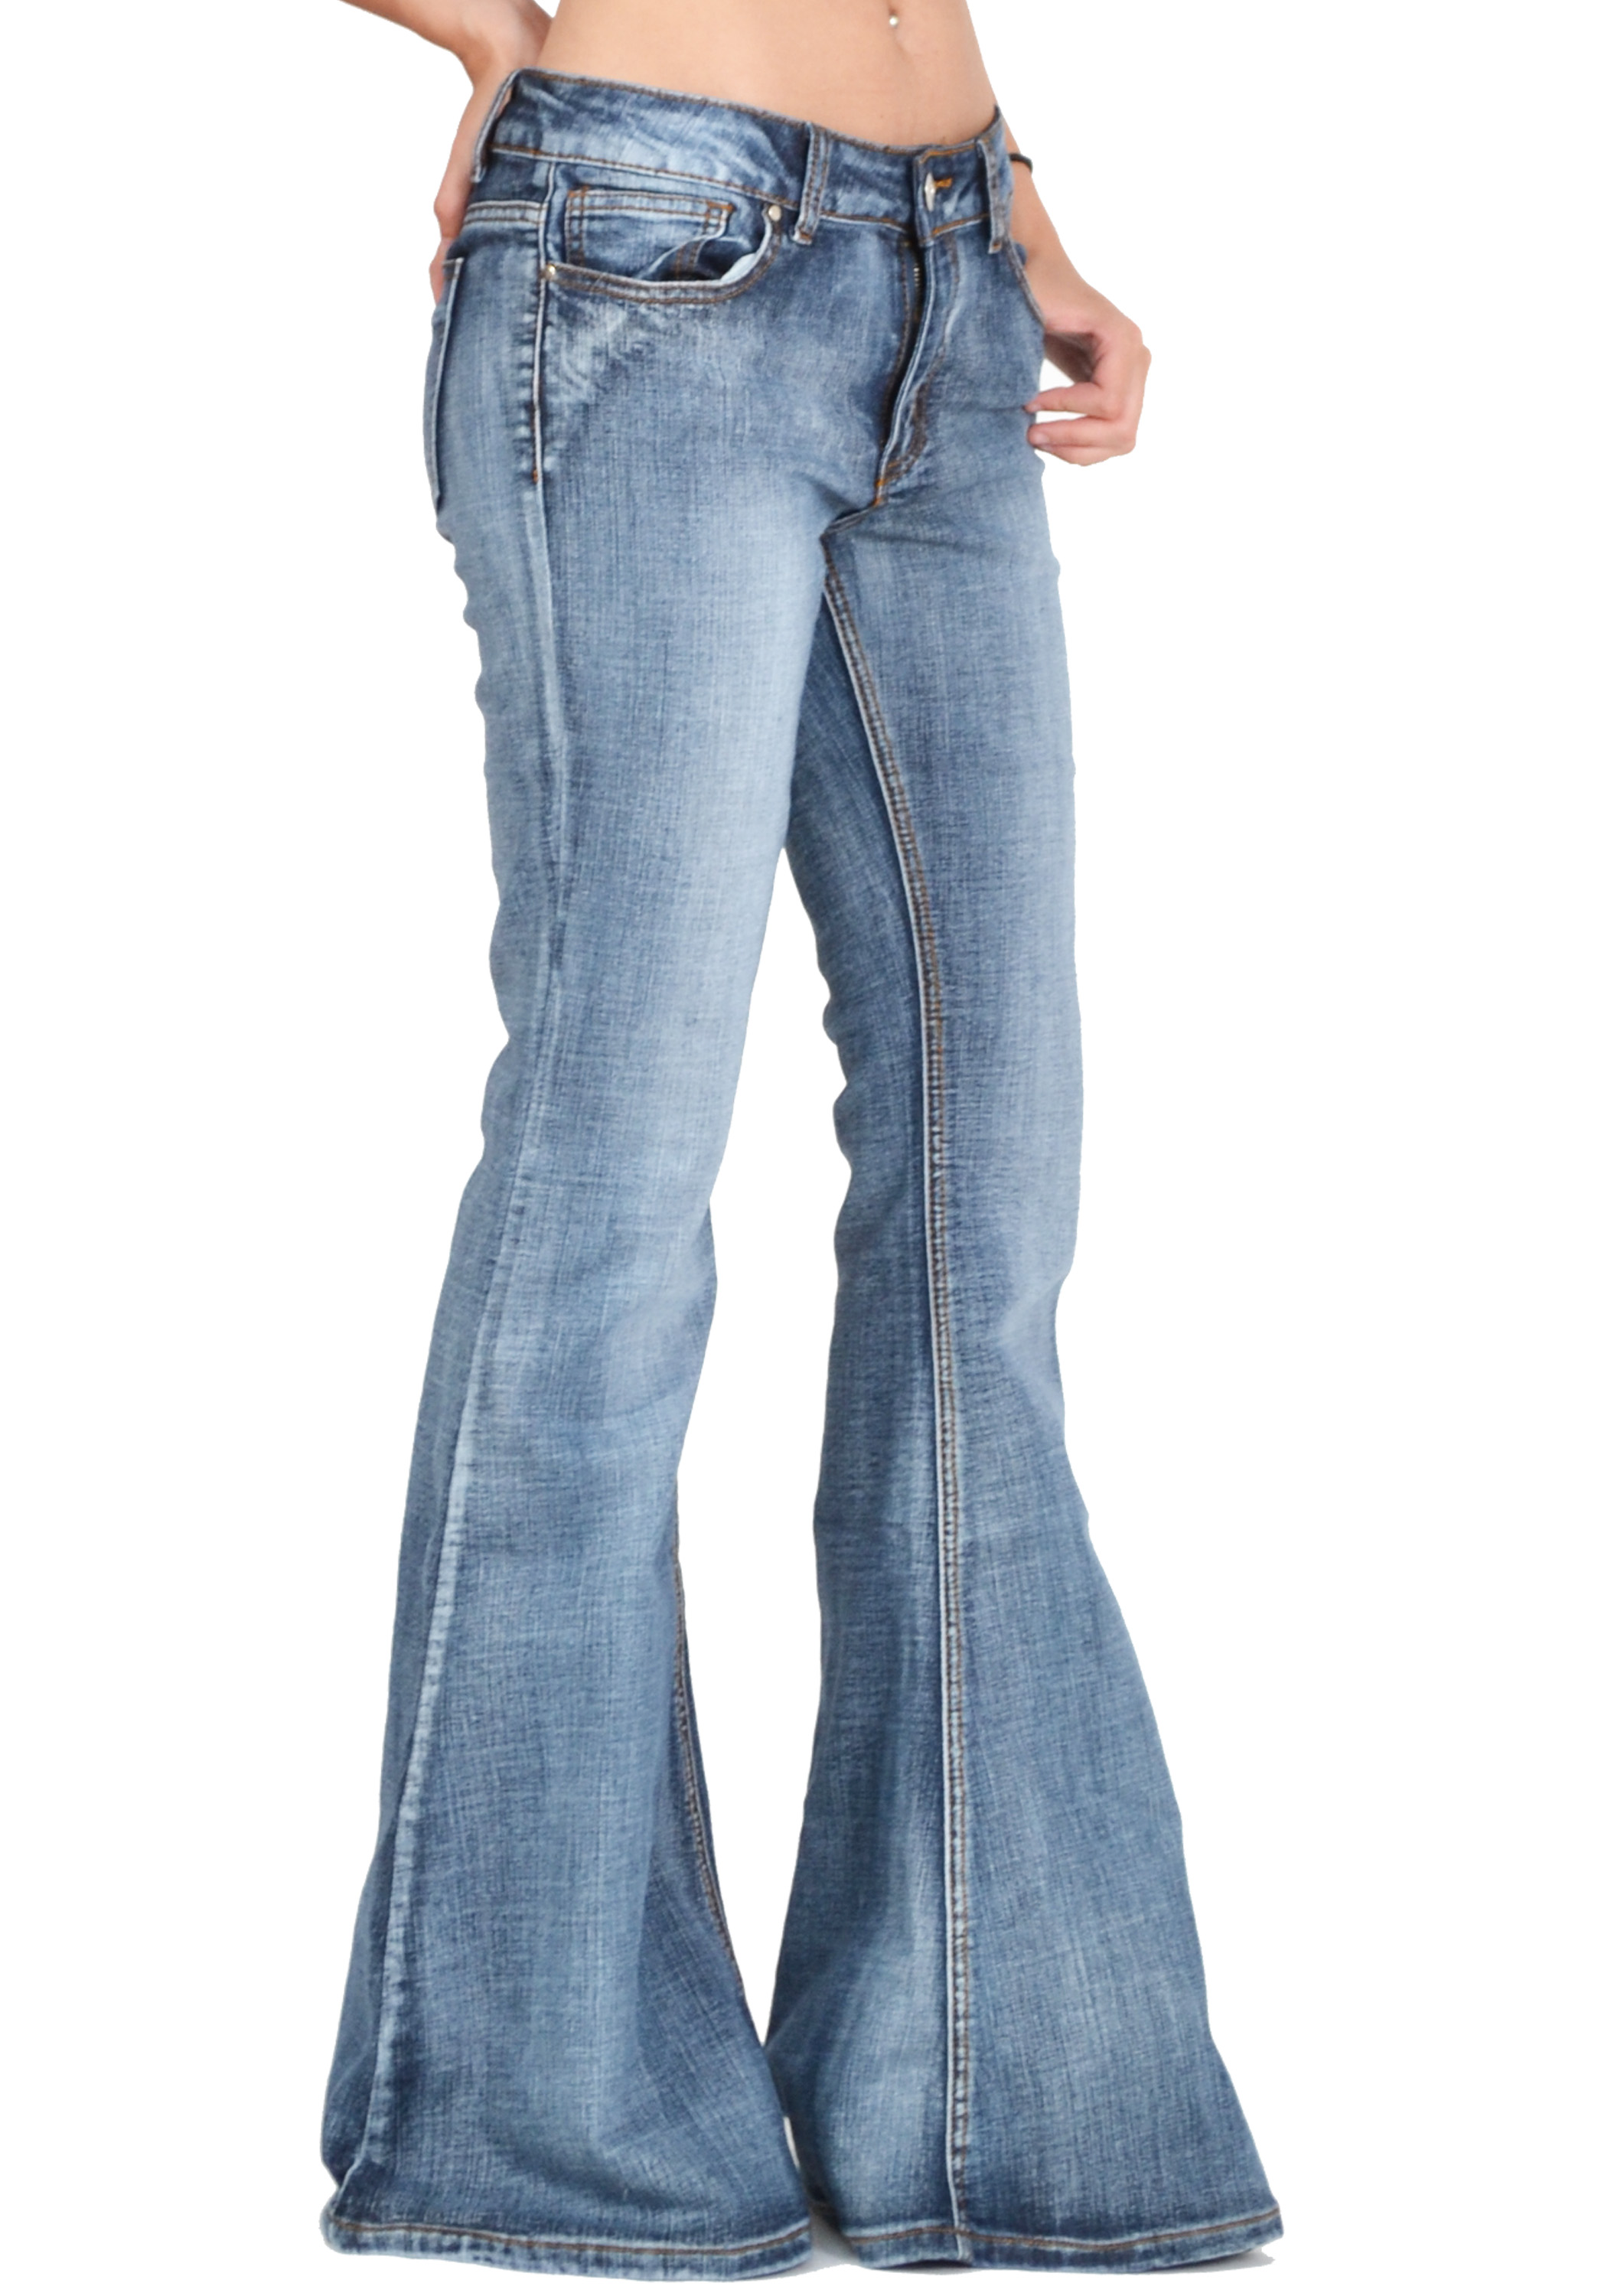 Flared jeans for women flares JXIRHJH